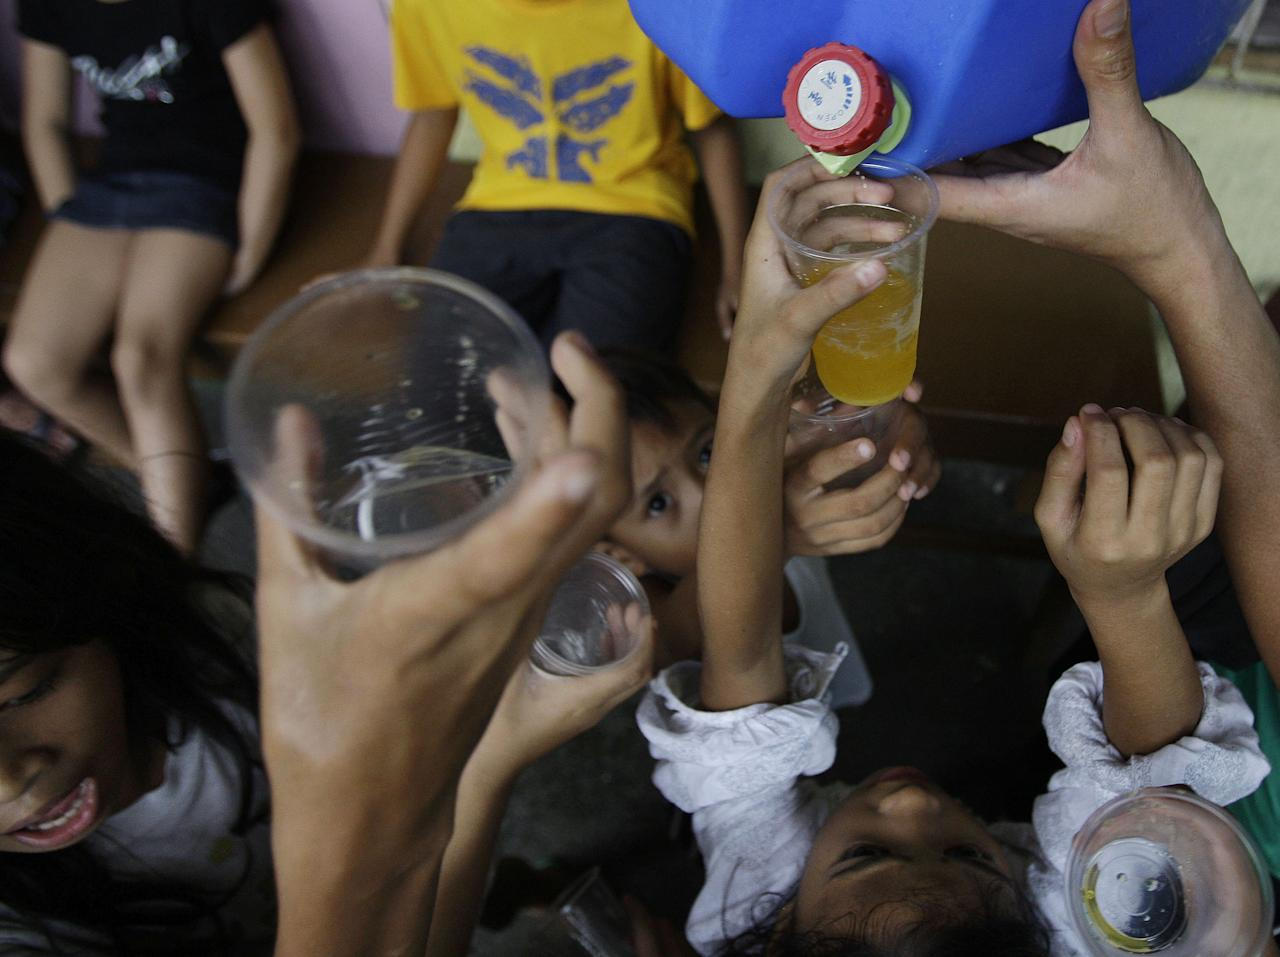 Young evacuees raise plastic cups close to a container to get the last drops of orange juice from private donors at a school that was converted into a temporary evacuation center in suburban Marikina city, east of Manila, Philippines, Friday Aug. 10, 2012. About 2.4 million people in Manila and nearby provinces have been affected, forcing more than 360,000 to seek shelter in government-run evacuation centers, the Office of Civil Defense reported Friday. (AP Photo/Aaron Favila)